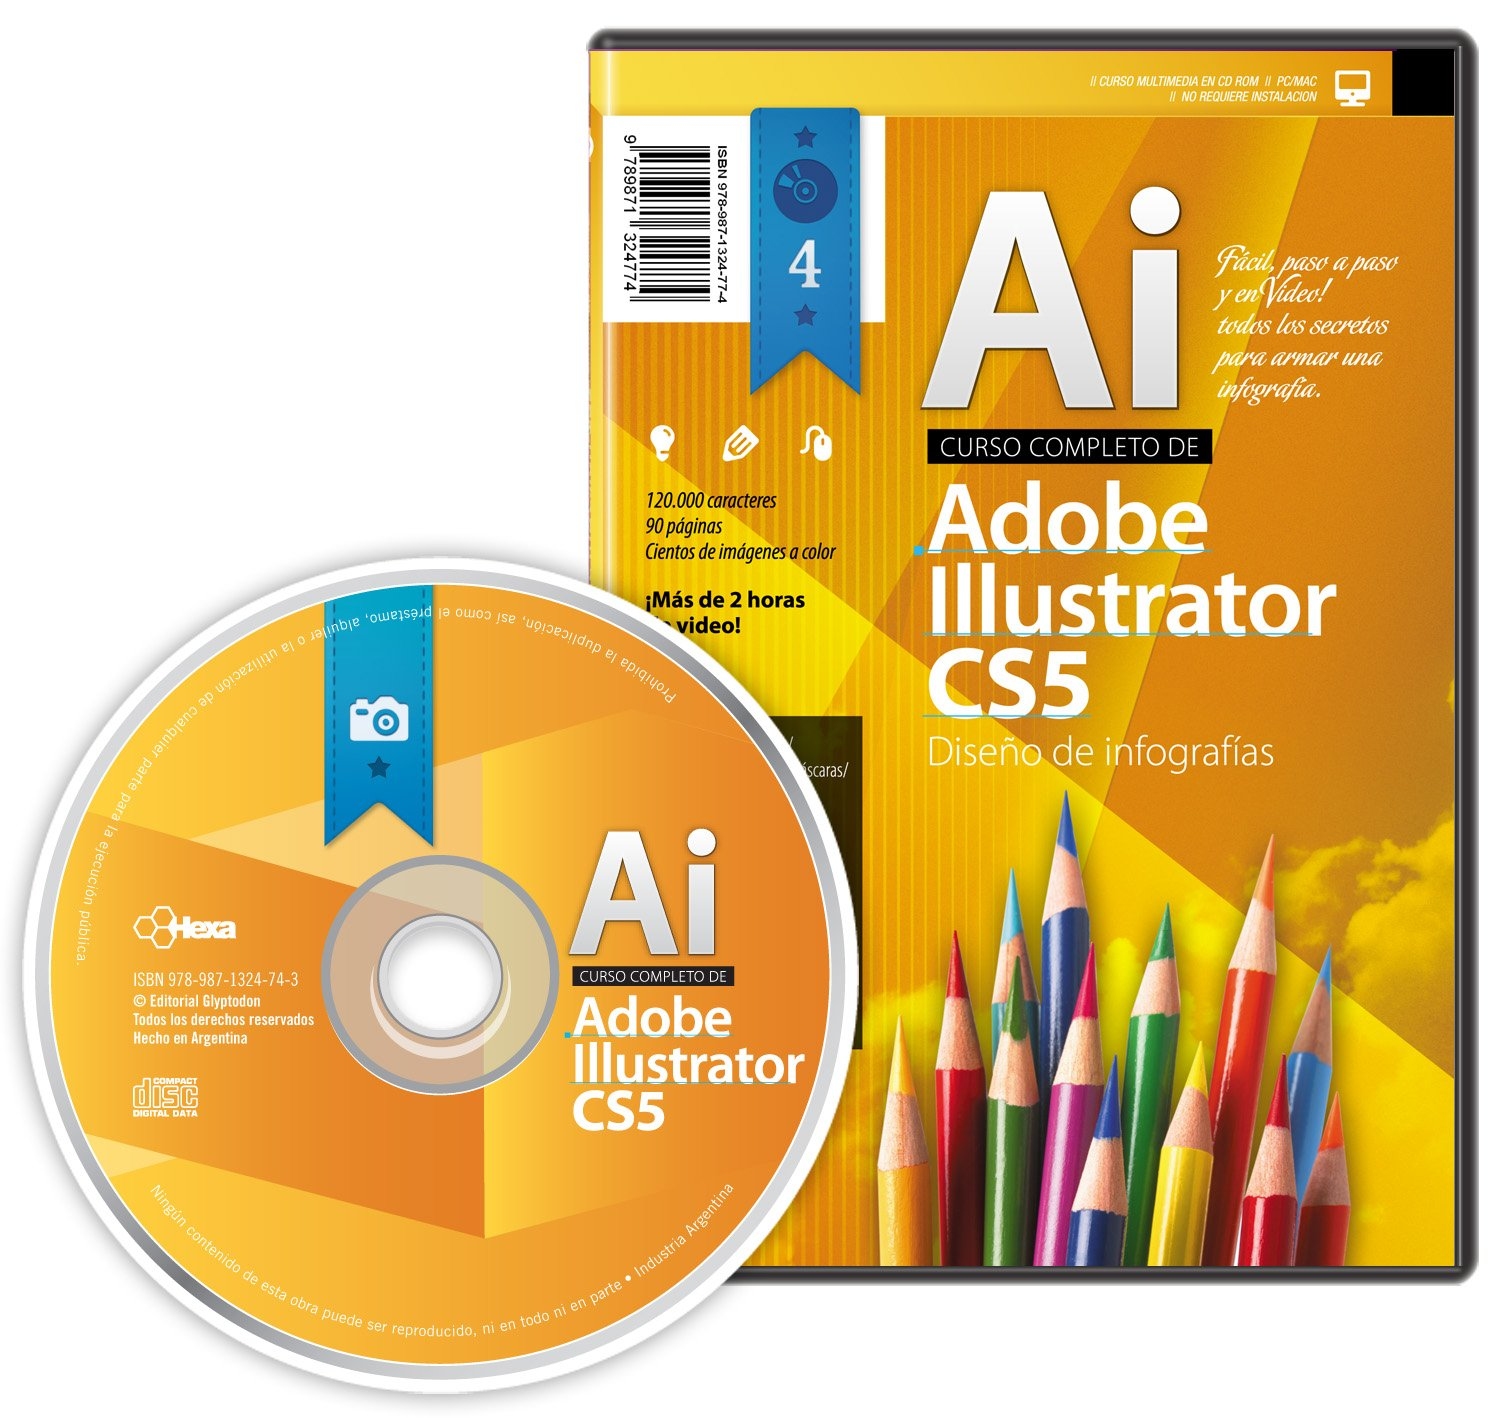 Adobe Illustrator CS5, Armado de infografias (Spanish Edition): Daniel Maldonado, Editorial Glyptodon: 9789871324774: Amazon.com: Books